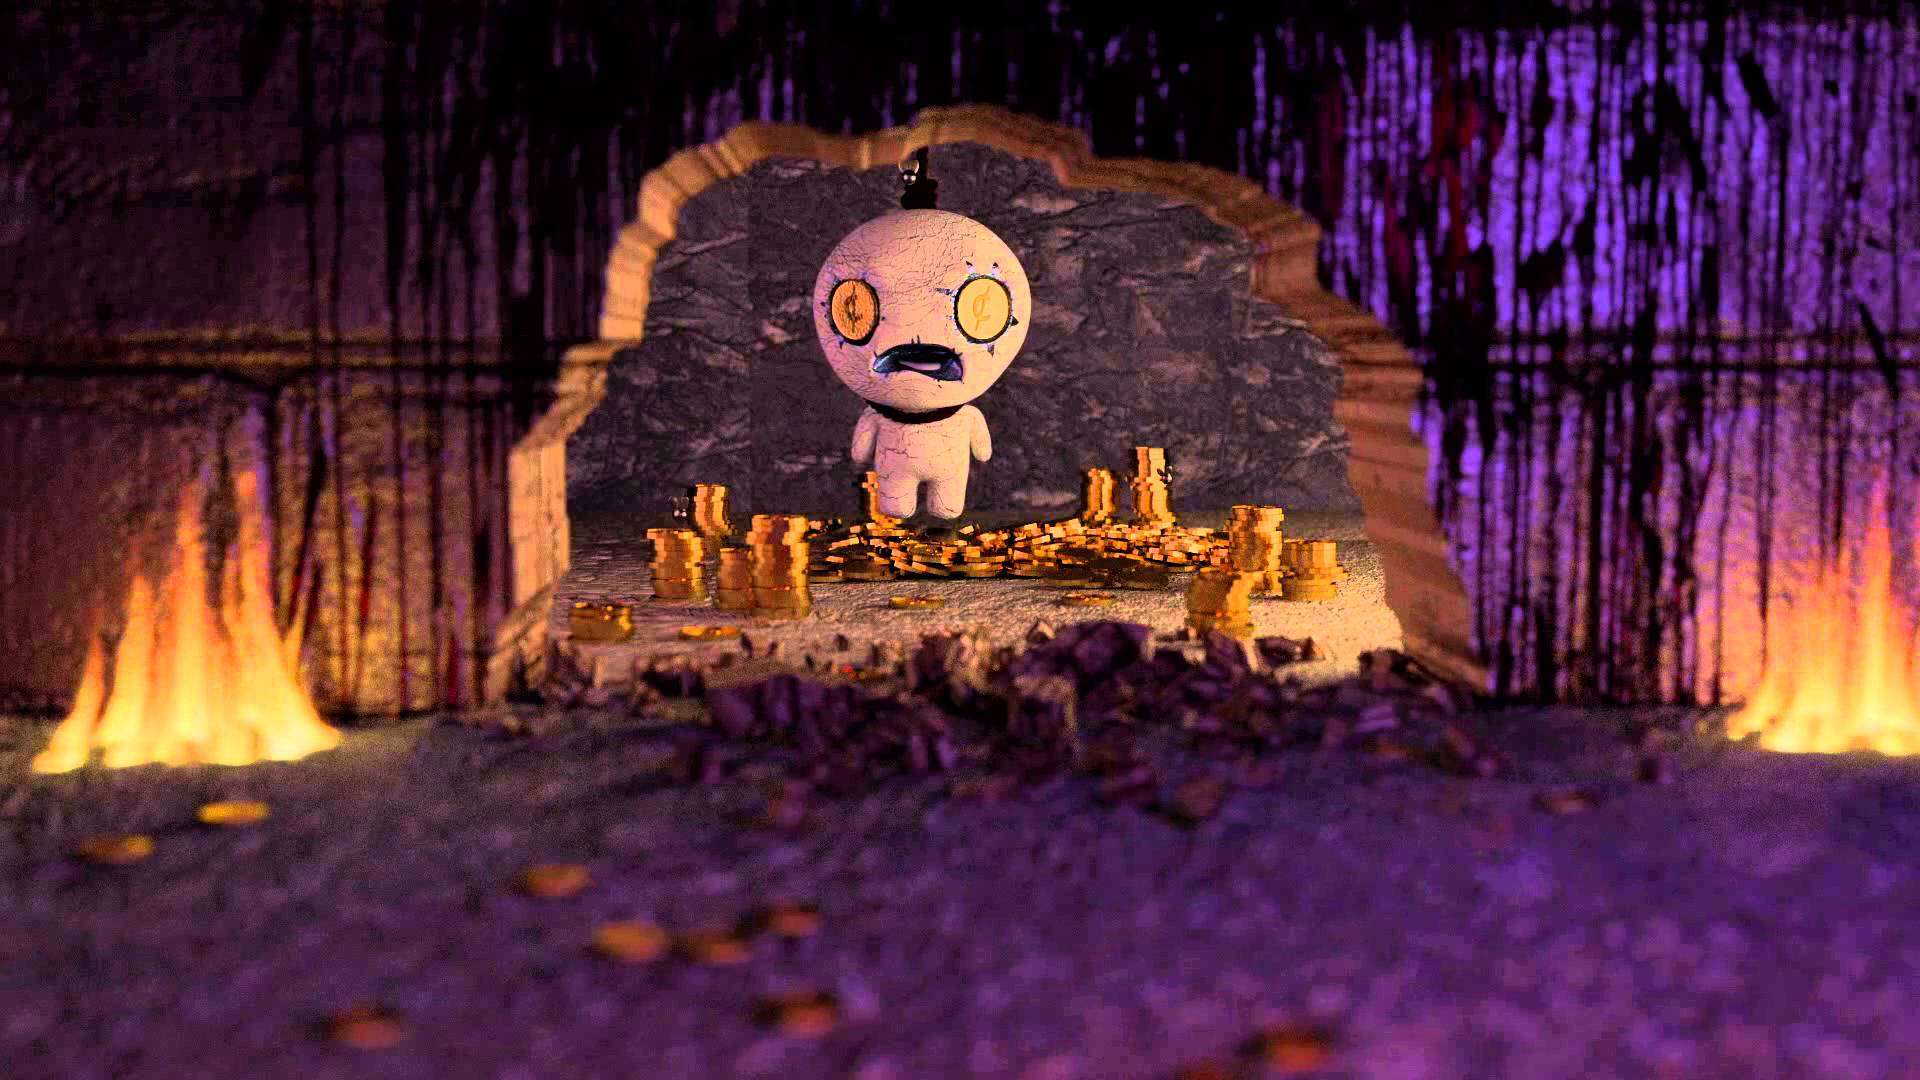 Afterbirth review photo